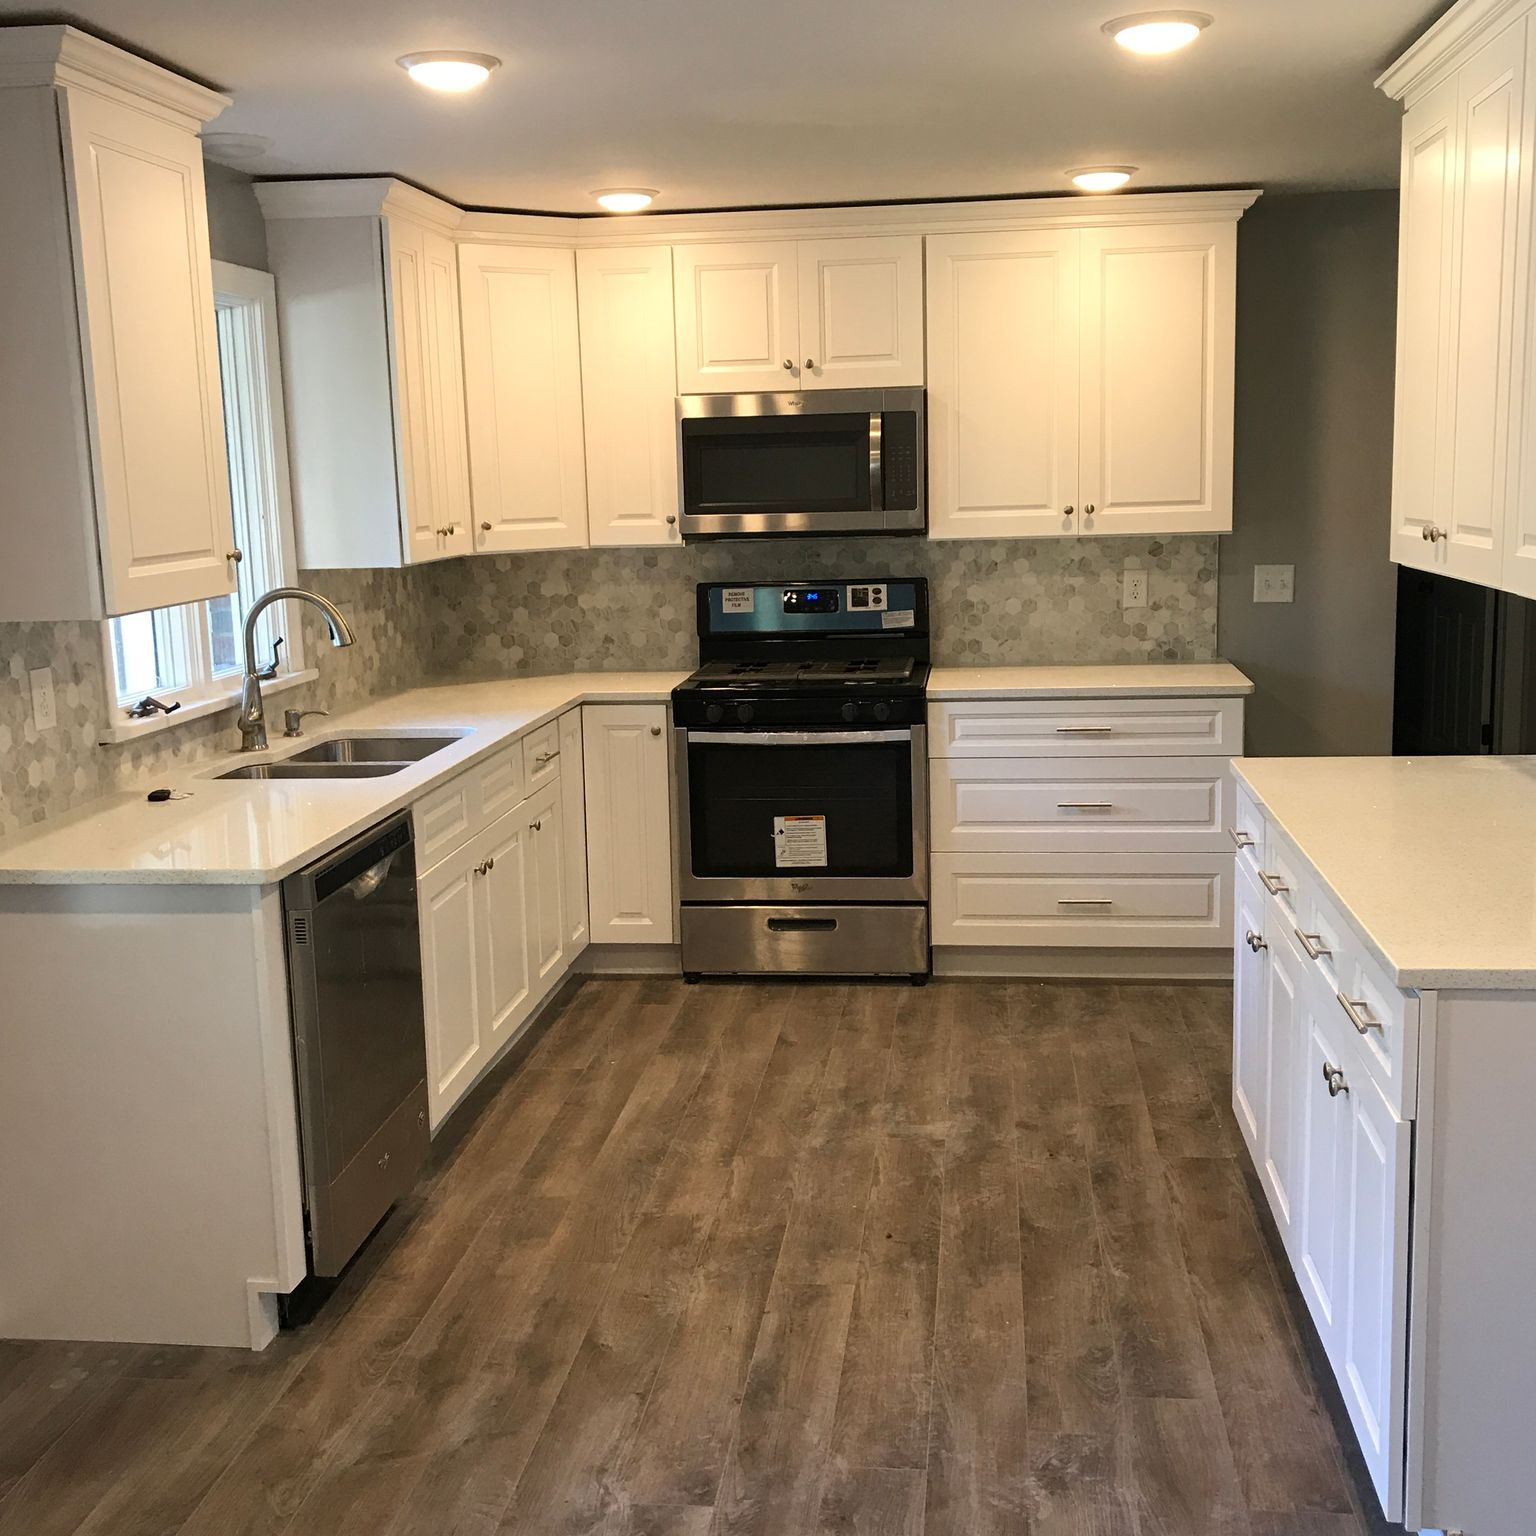 337 Avalon Dr For Sale Rochester NY